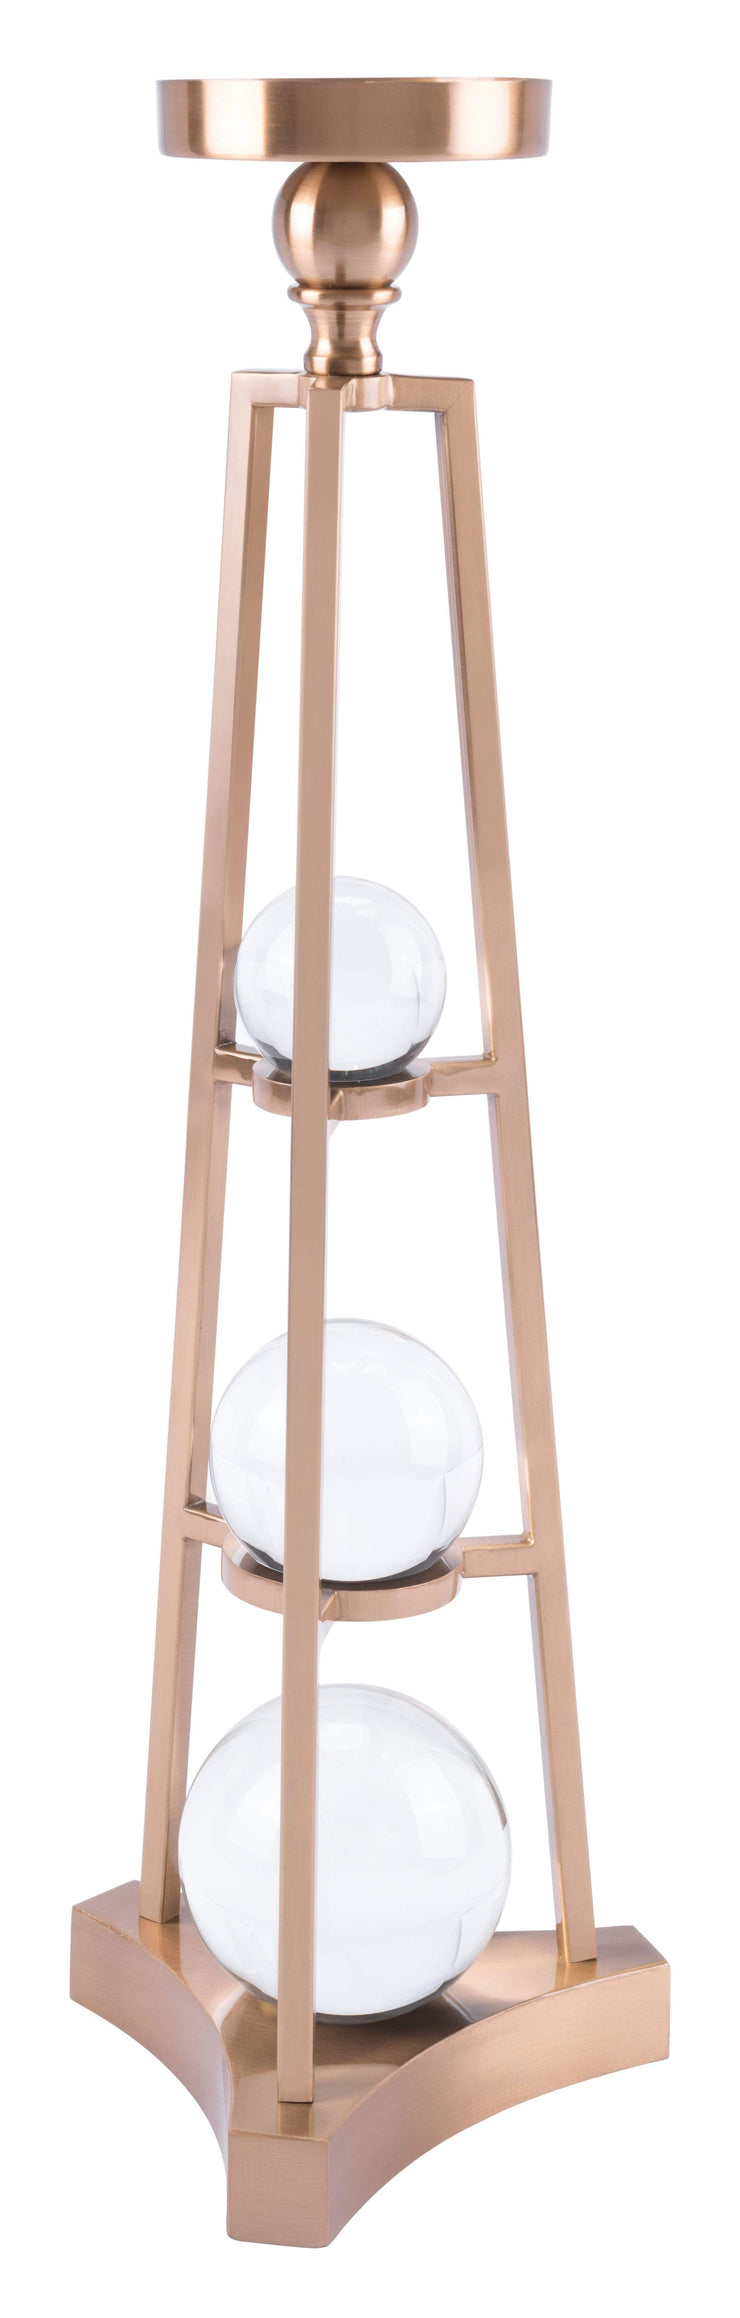 Zuo Modern Candle Holder With Orbs Lg Antique Brass Candle Holder With Orbs Lg Antique Brass LUNAVUE Shapewear